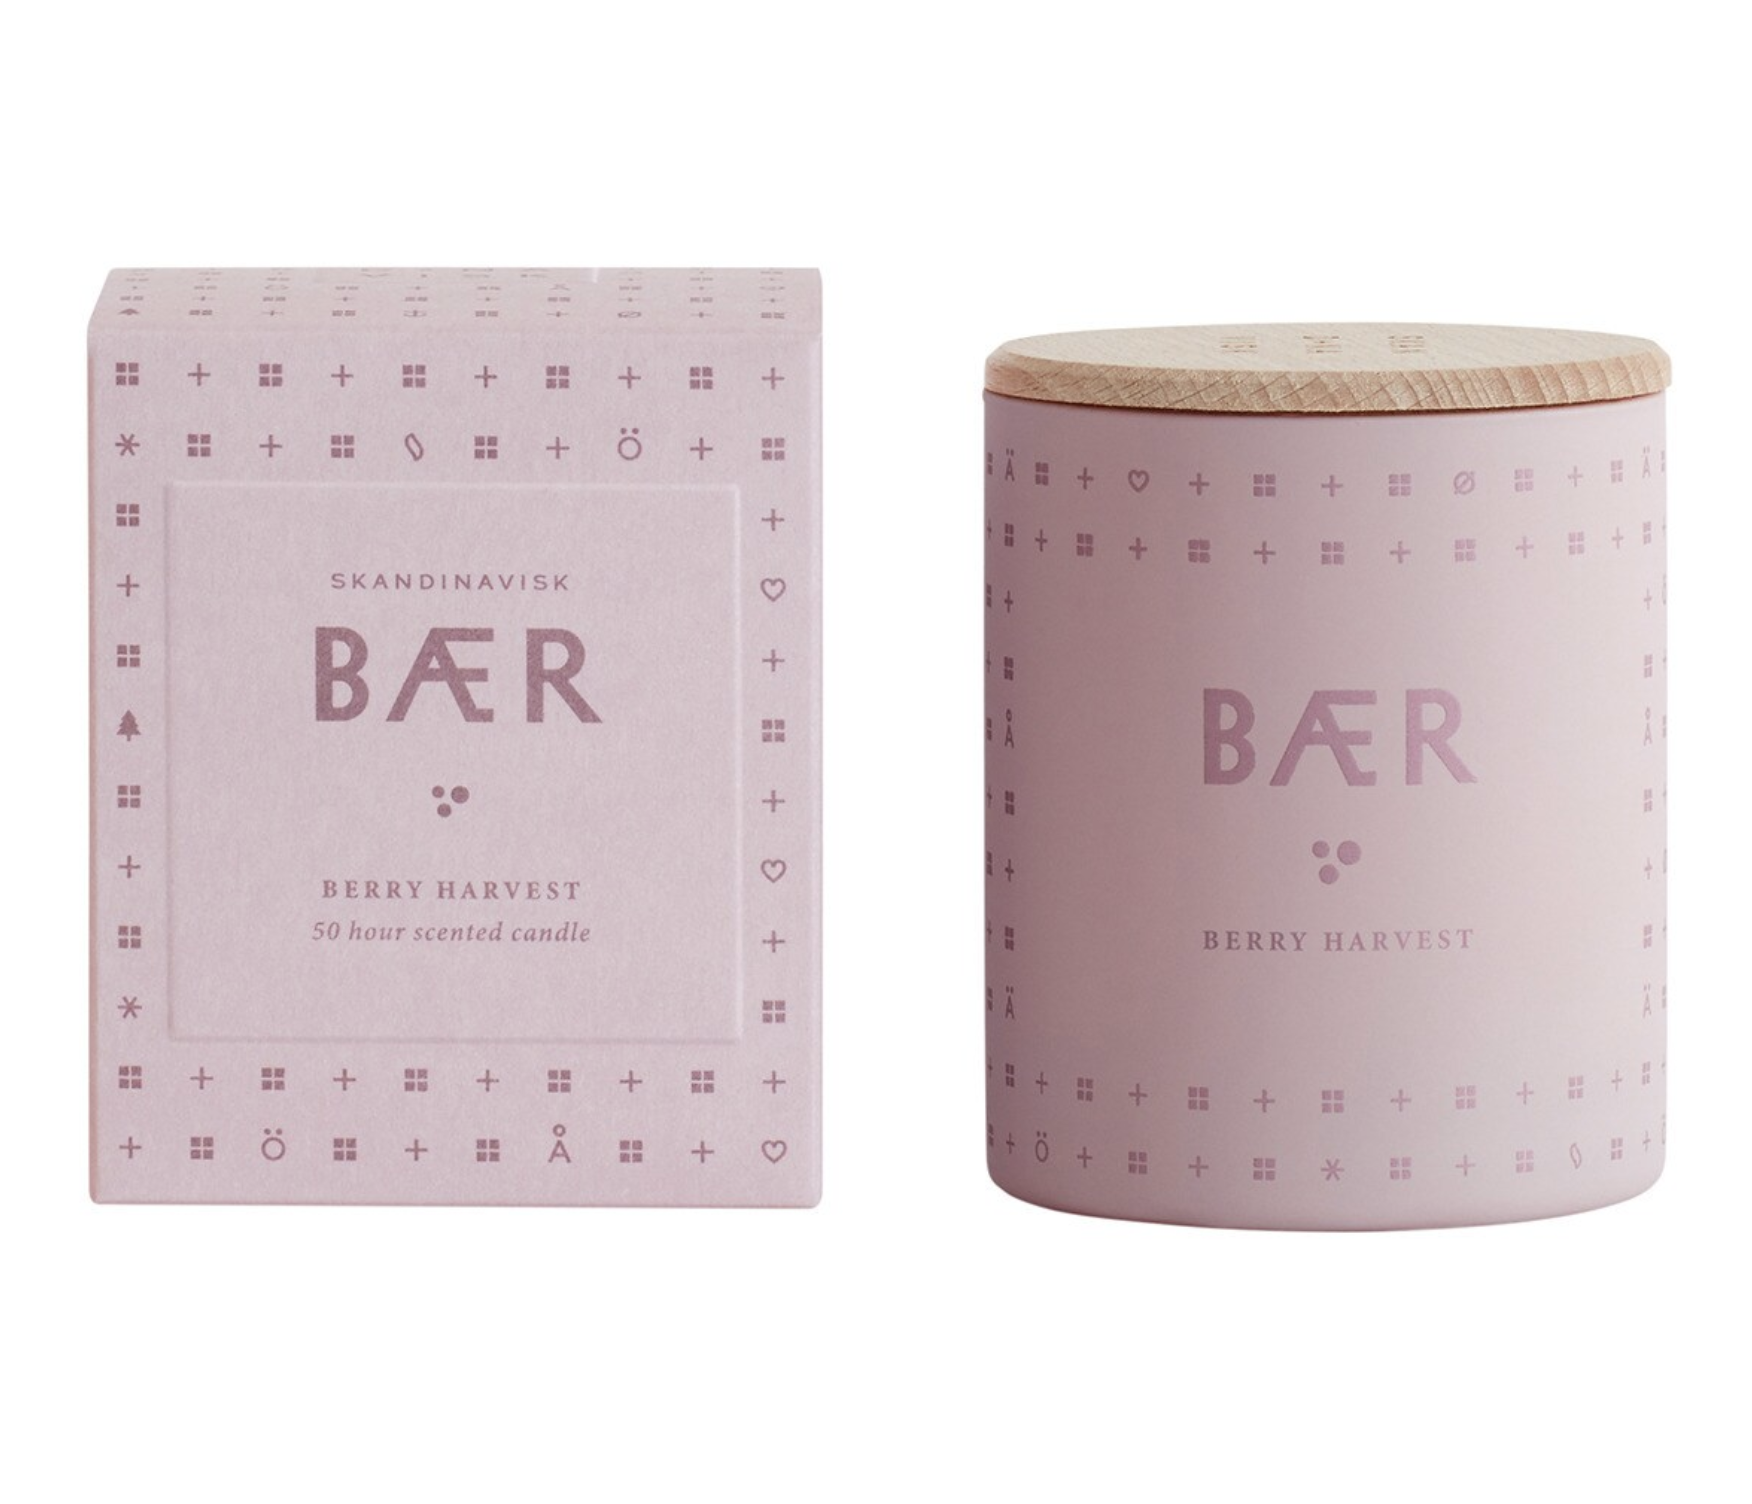 Baer Skandinavisk Scented Candle Glass